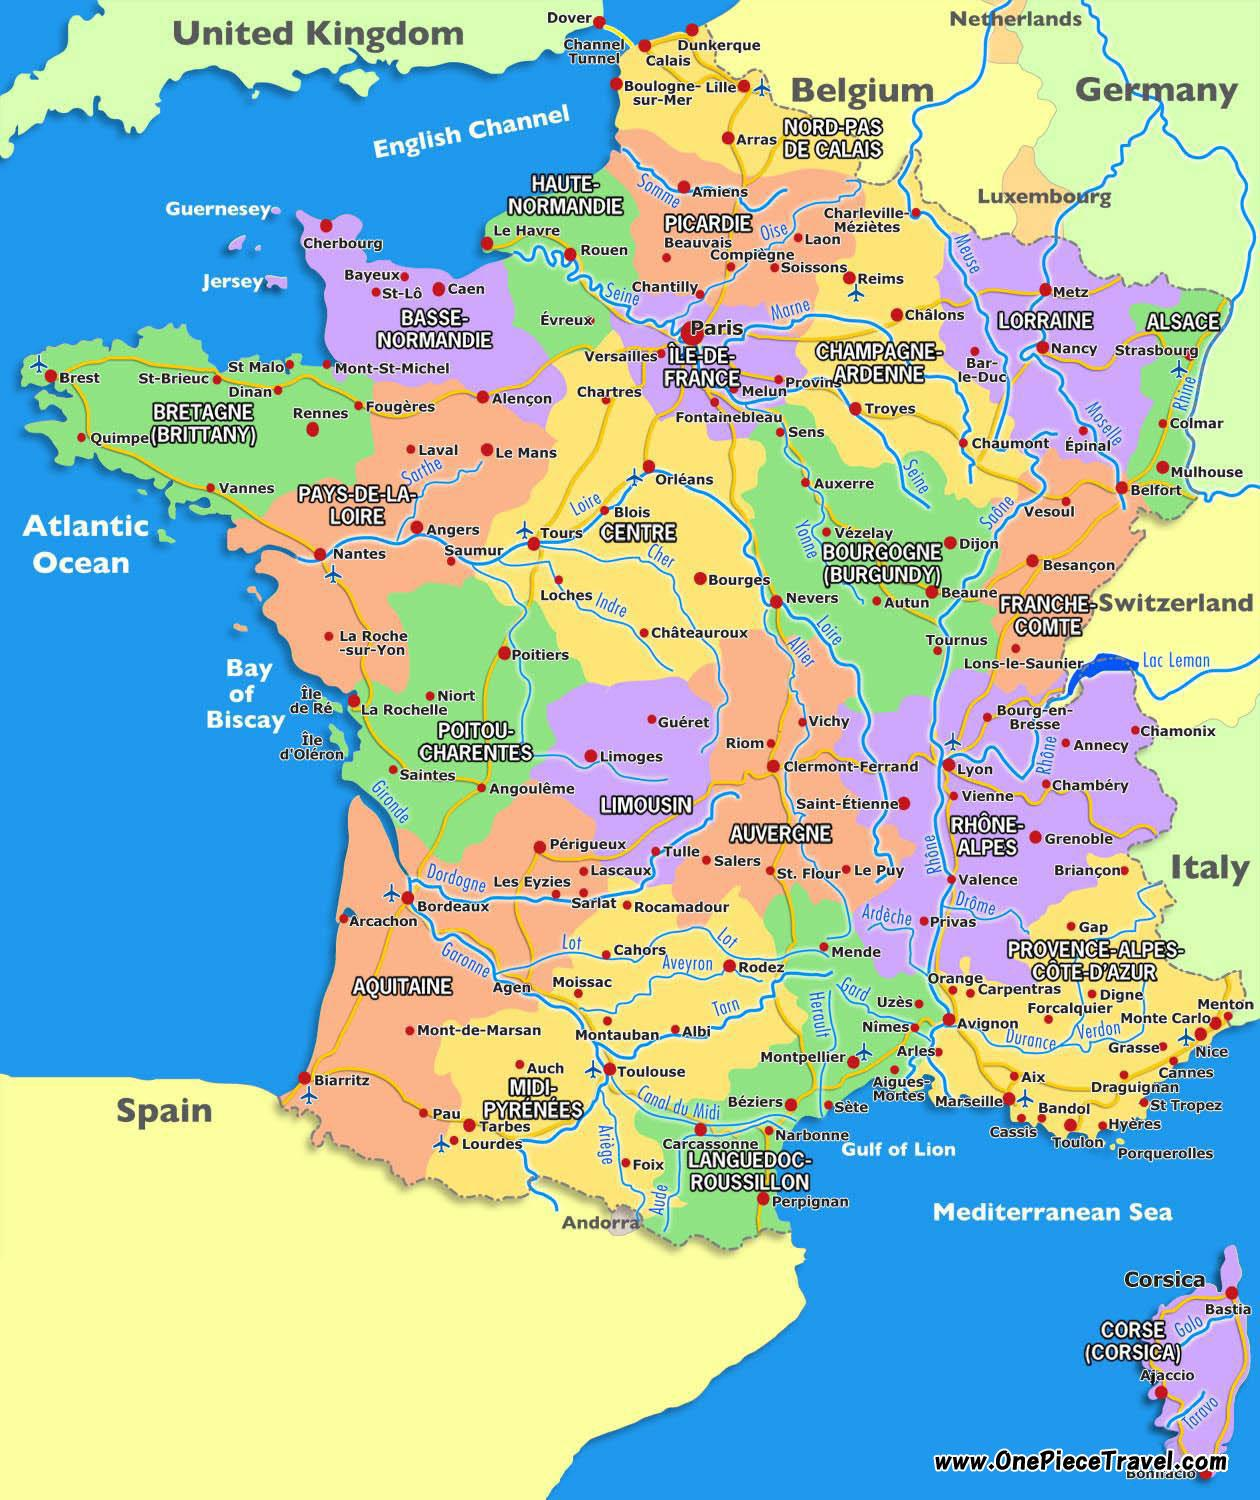 France tourist map Tourist map of France tourist attractions